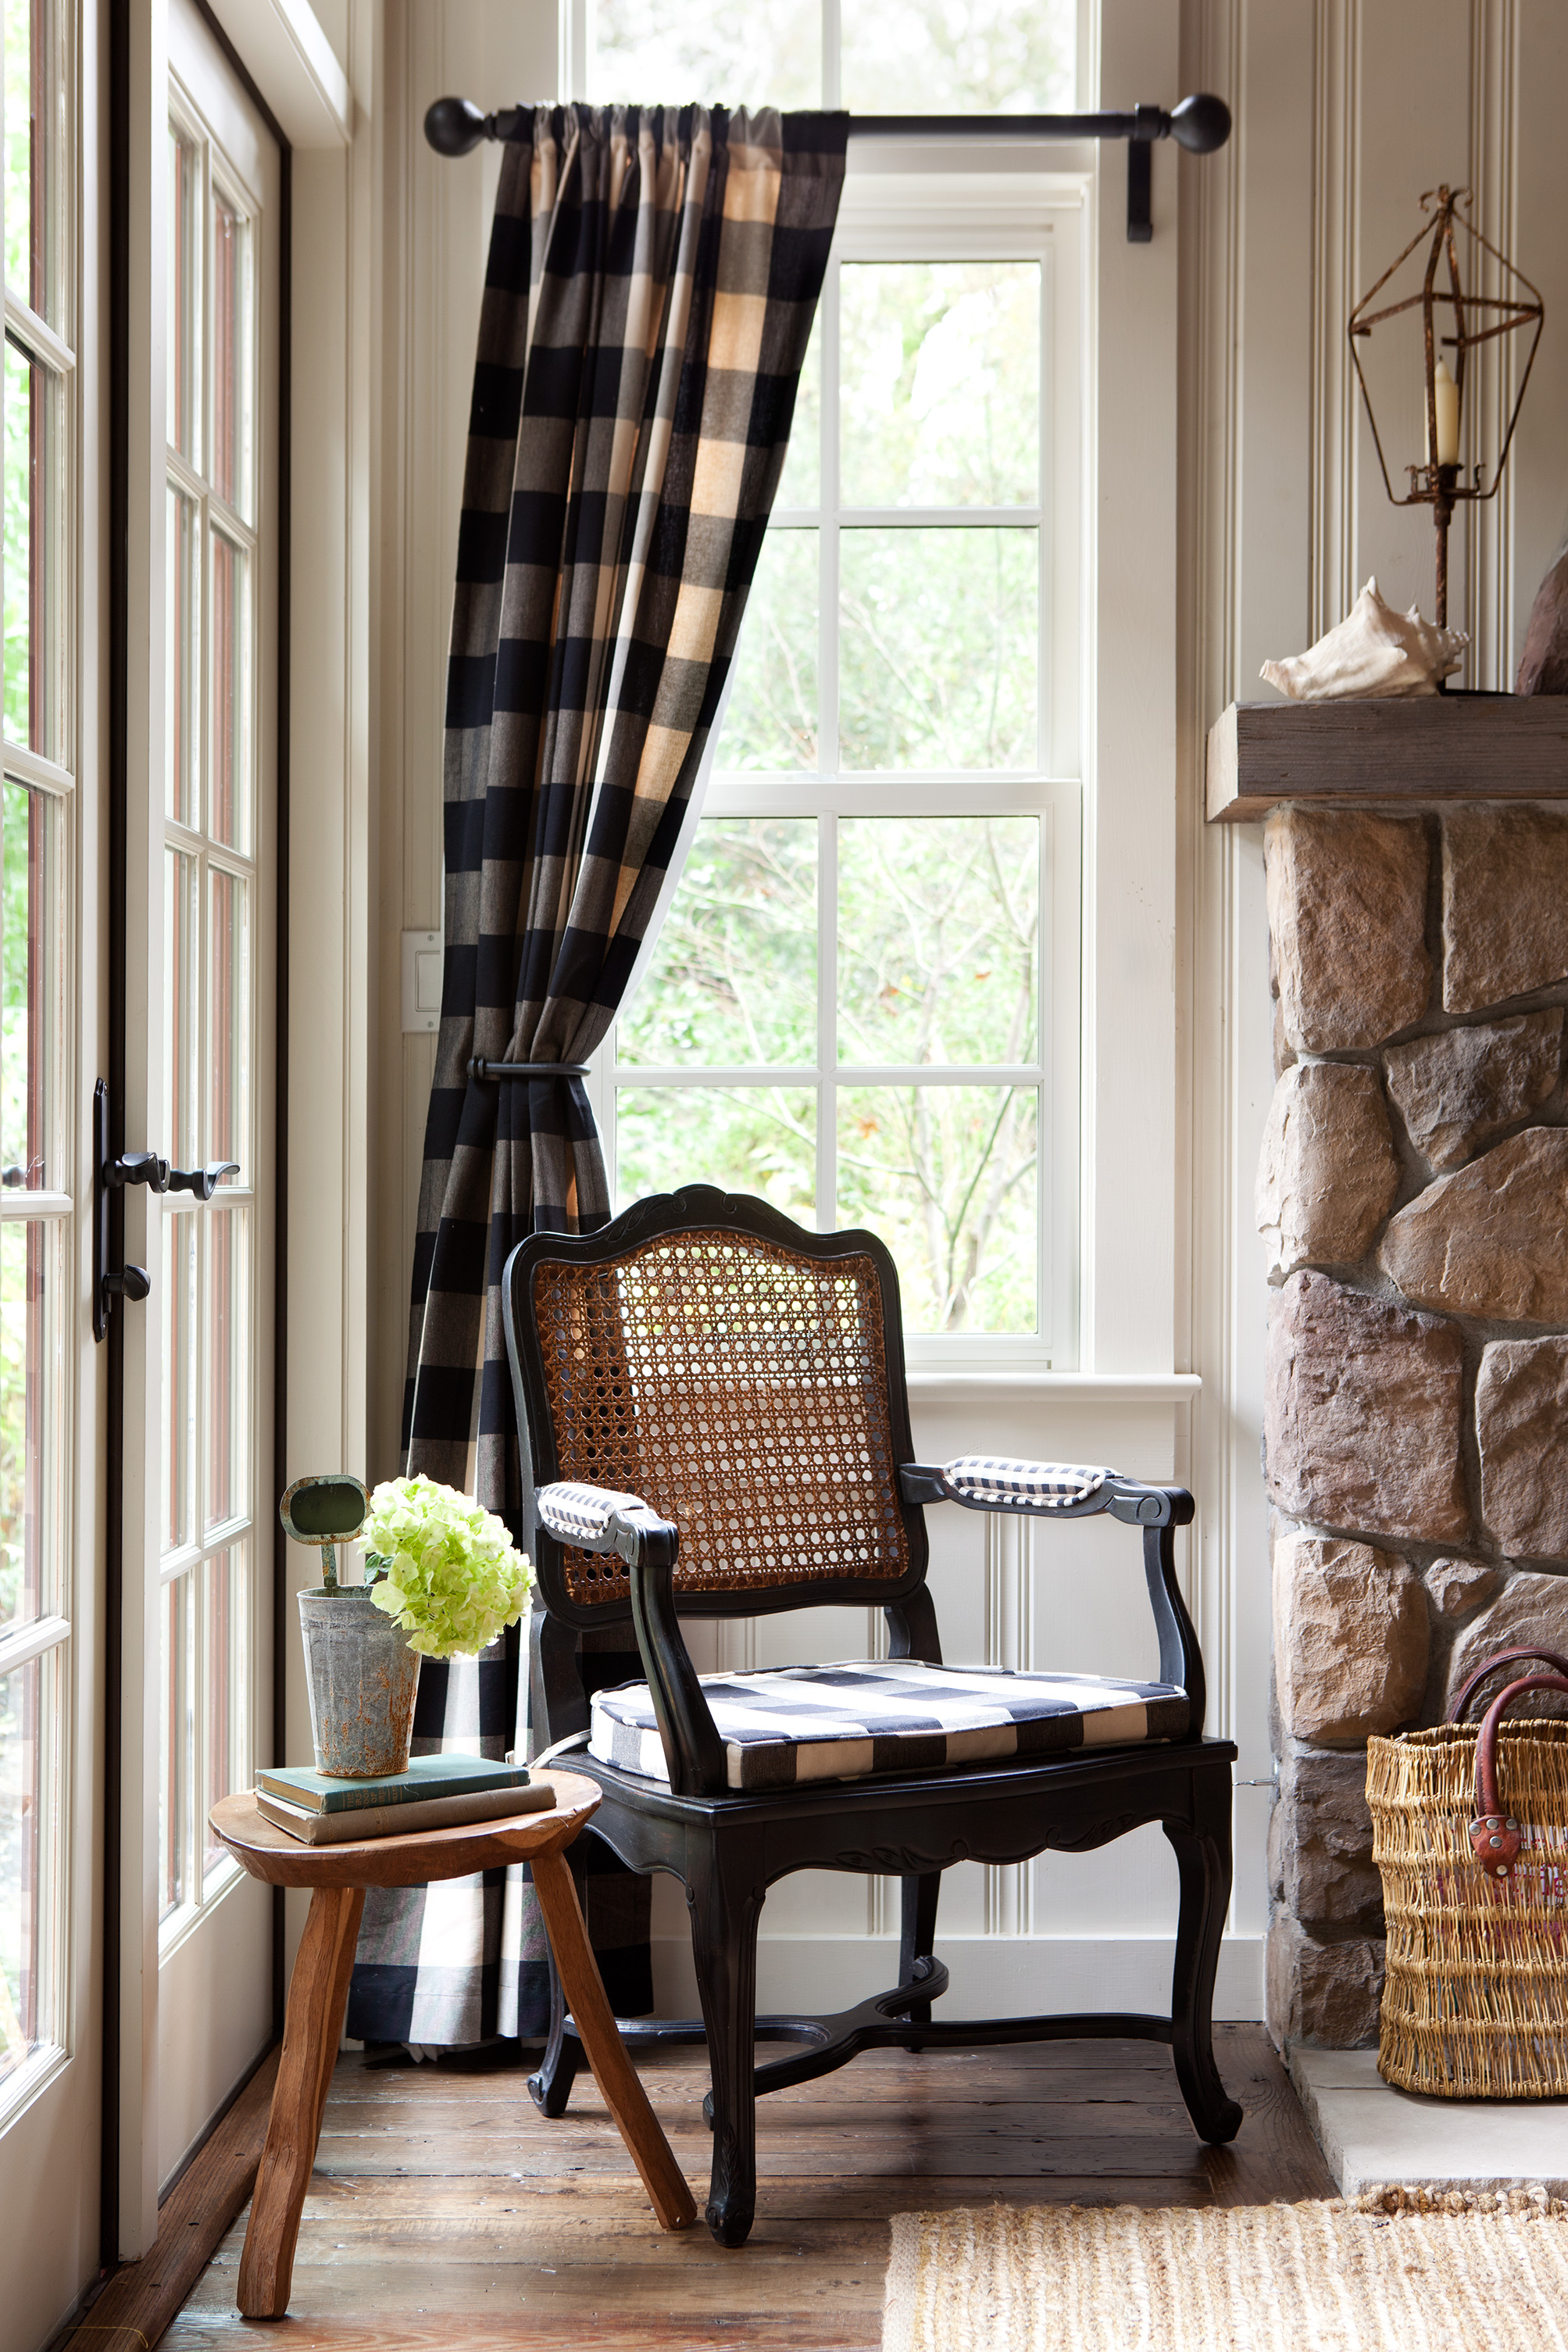 17 Rustic Window Treatments You ll Want to Try Now